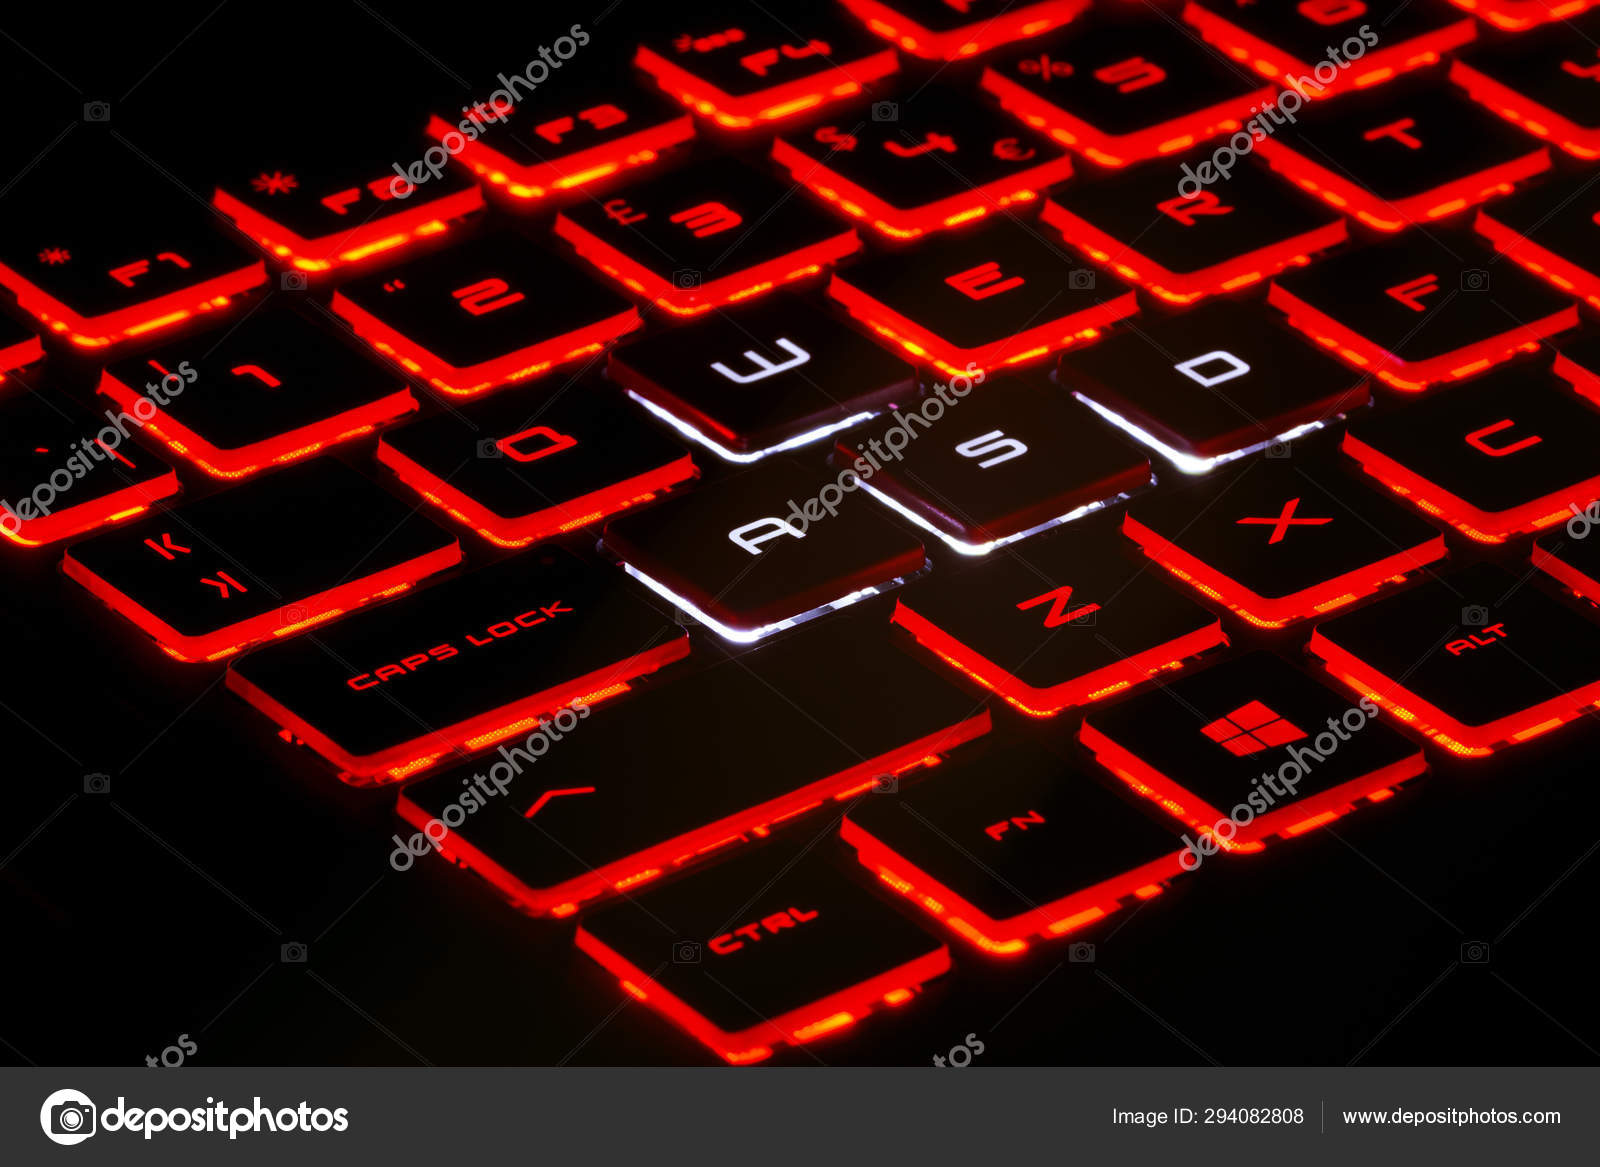 ᐈ Colorful Gaming Wallpaper Stock Backgrounds Royalty Free Red Gaming Wallpaper Photos Download On Depositphotos